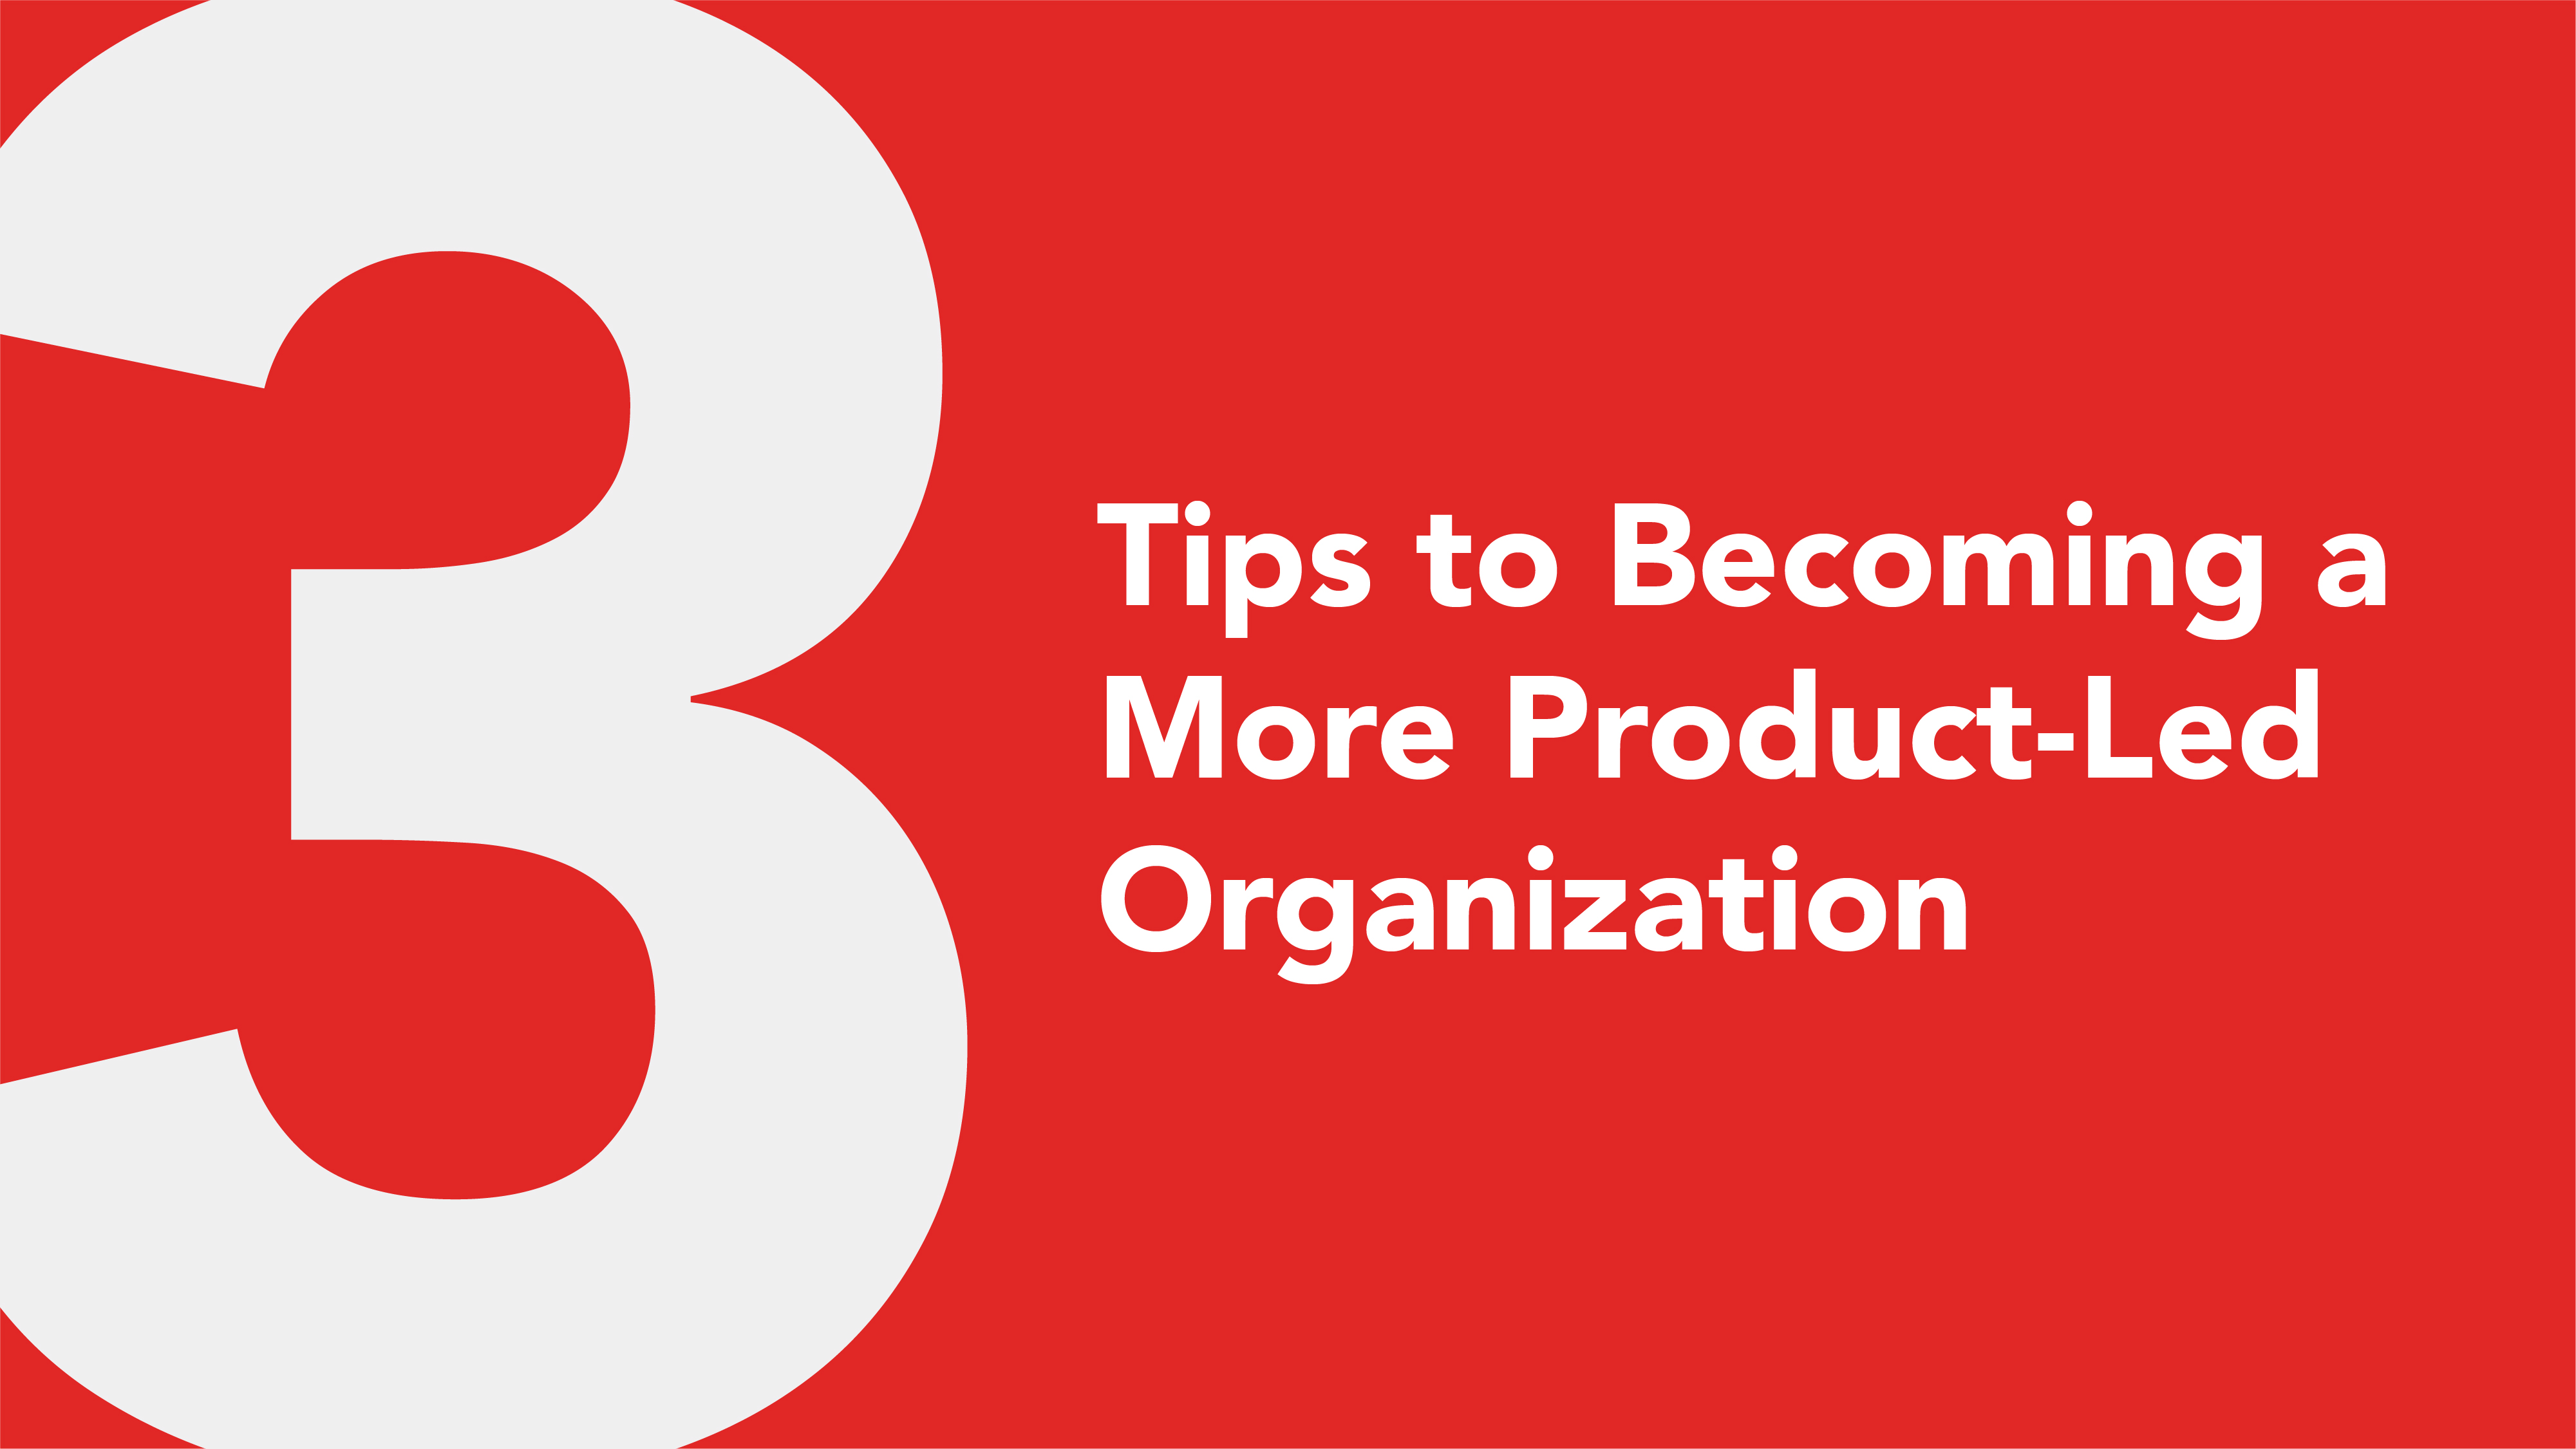 3 Tips to Becoming a More Product-Led Organization